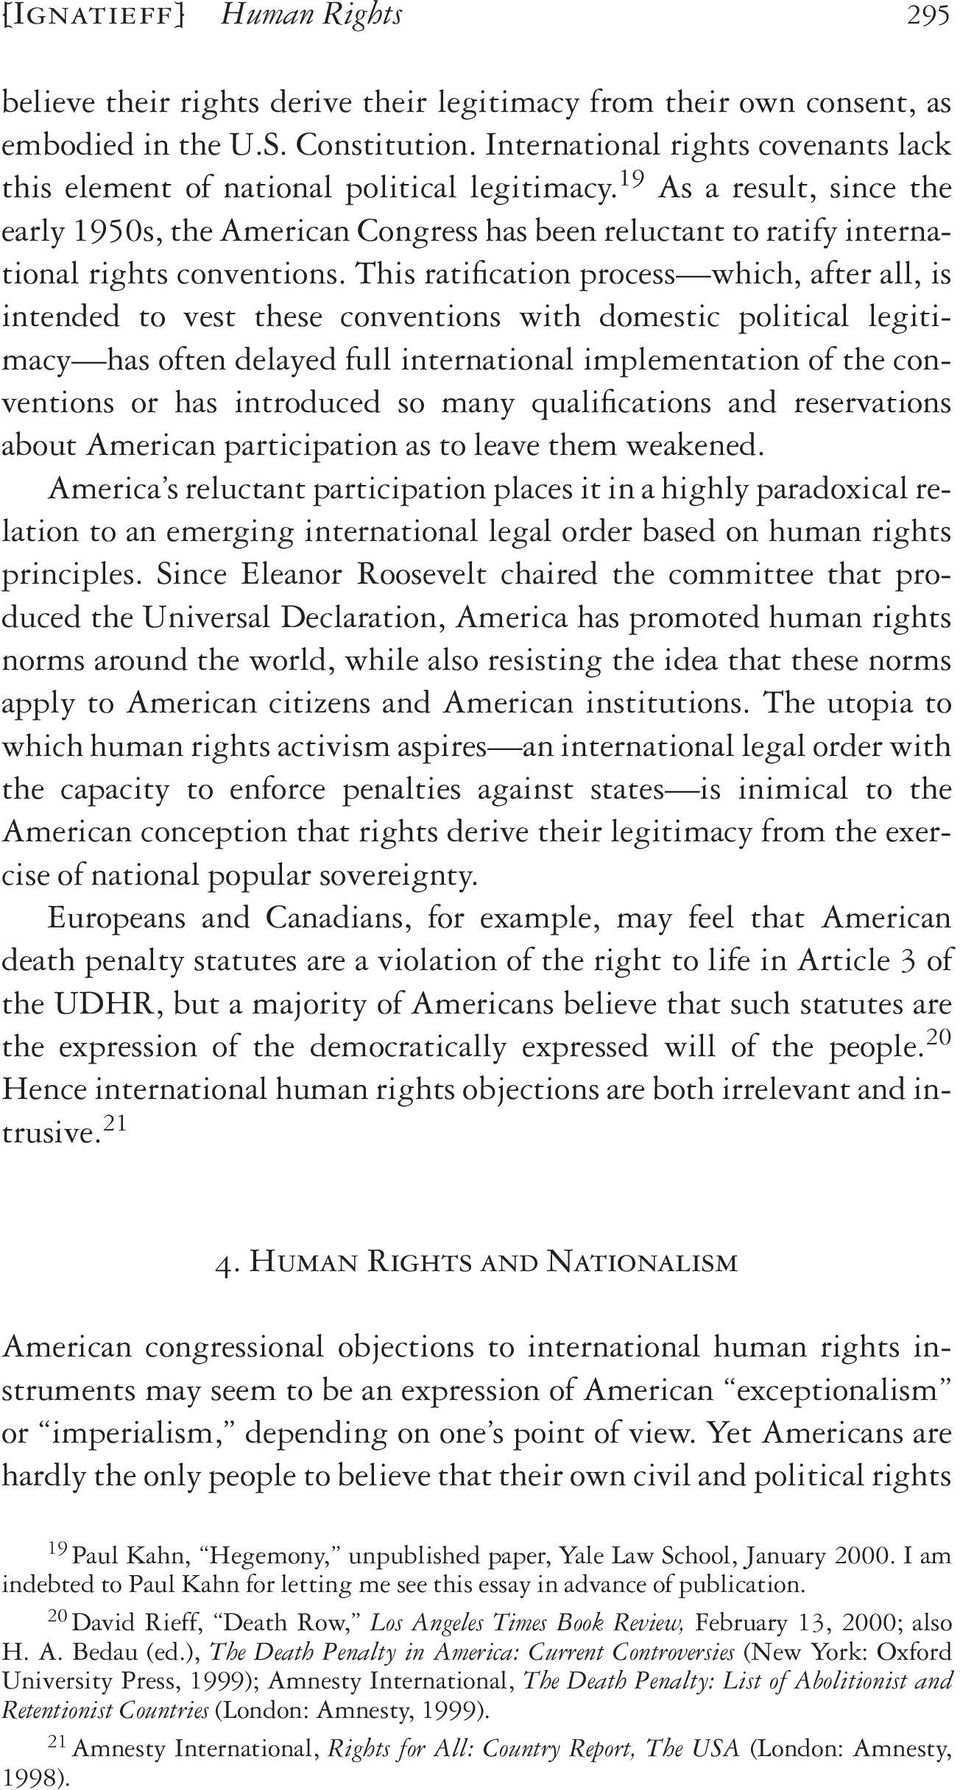 19 As a result, since the early 1950s, the American Congress has been reluctant to ratify international rights conventions.